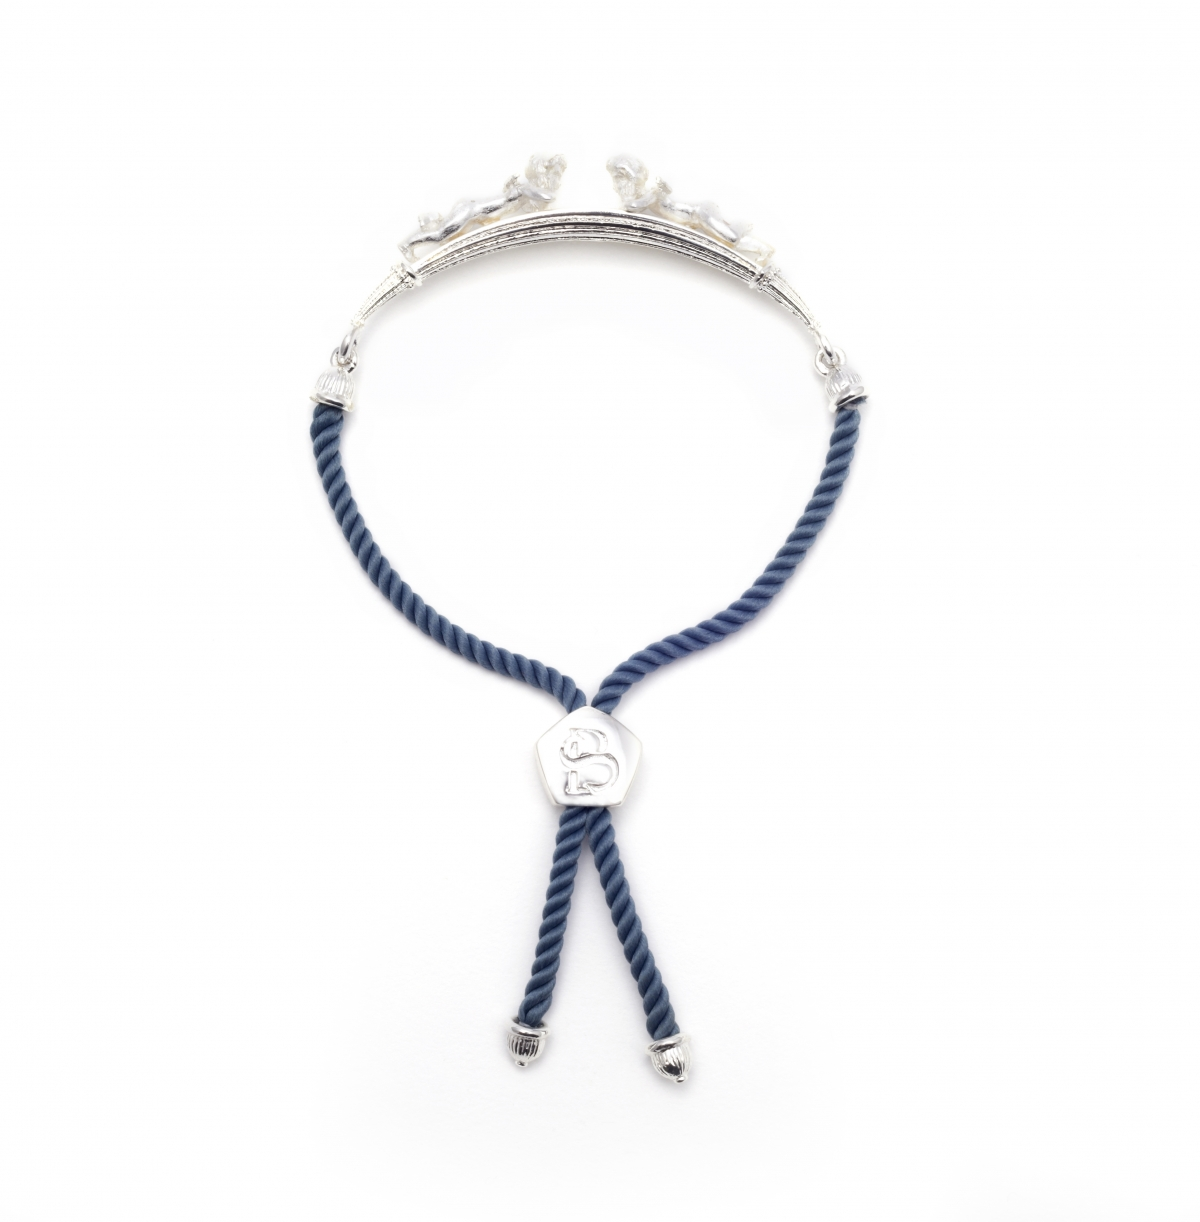 Cherub Friendship Bracelet